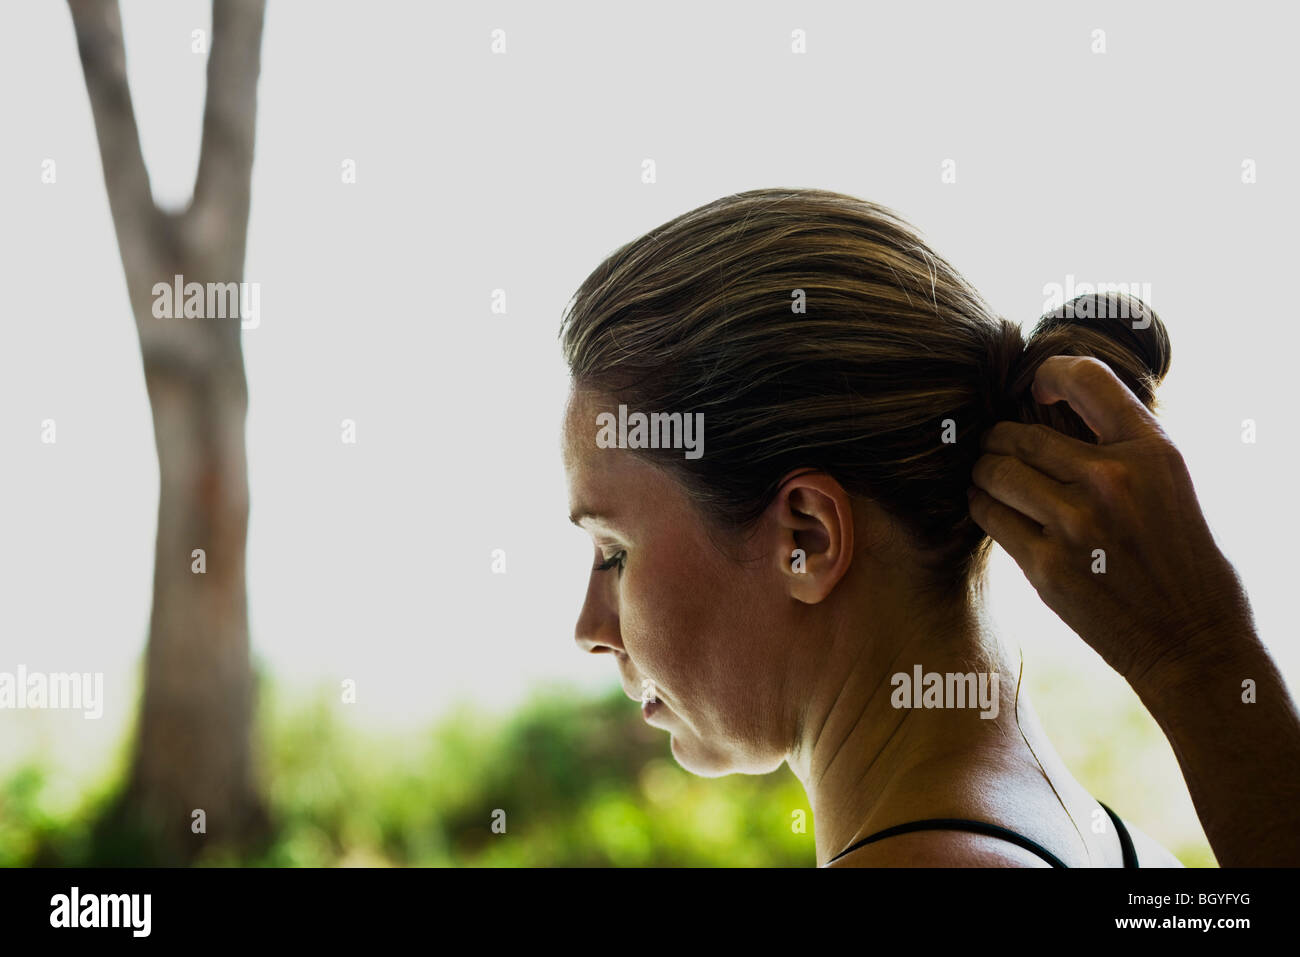 Woman having hair styled, side view - Stock Image